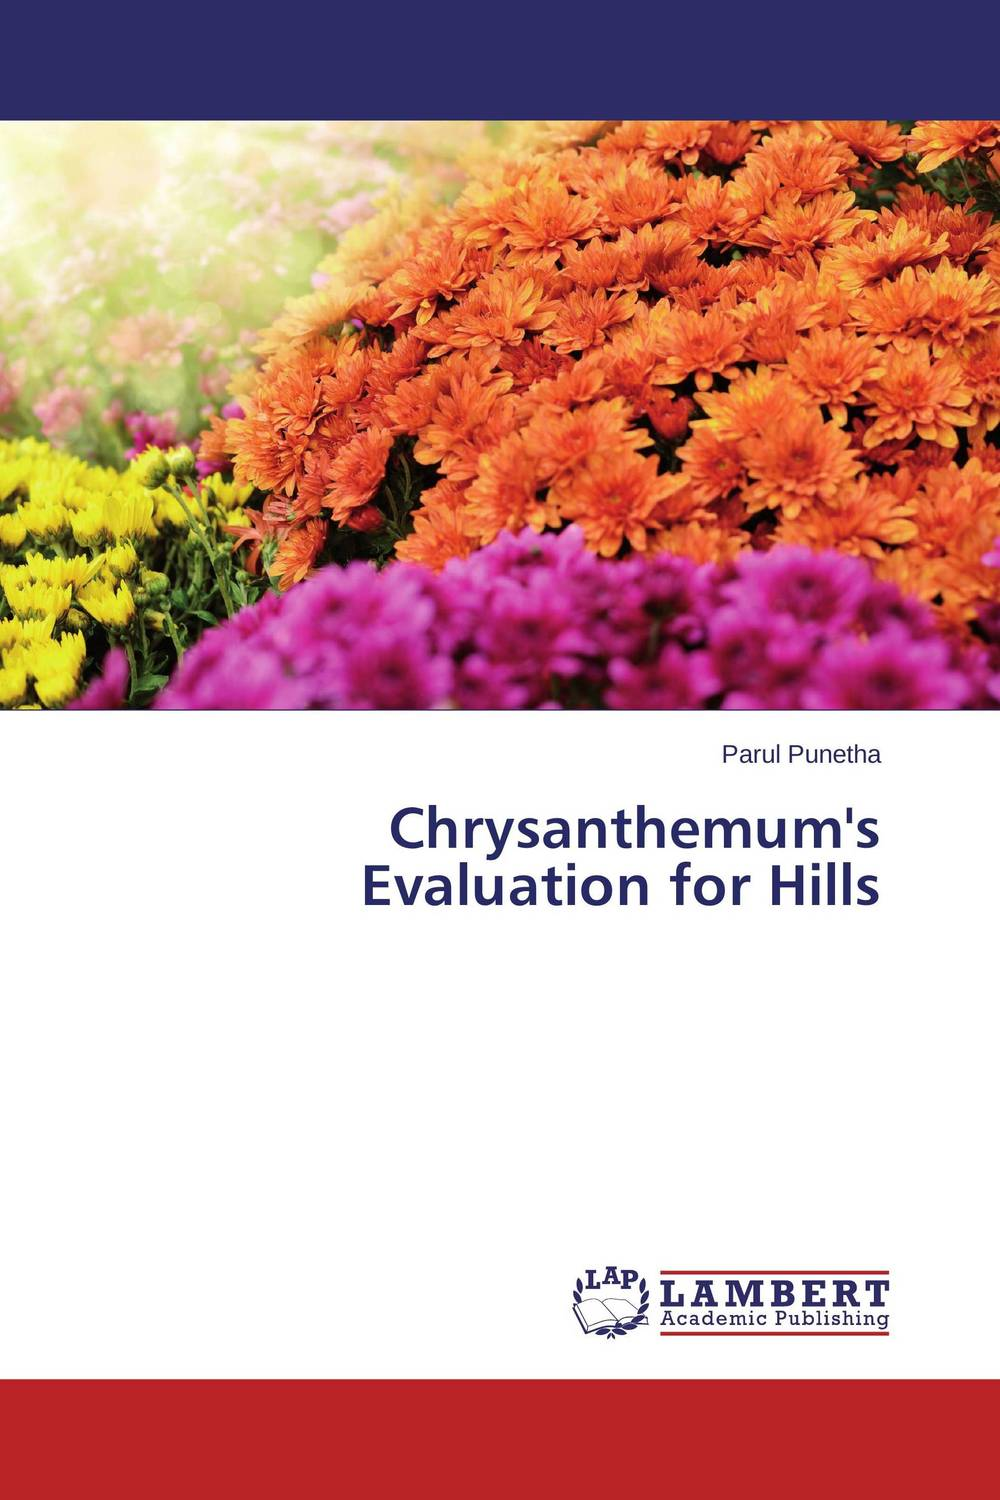 Chrysanthemum's Evaluation for Hills pastoralism and agriculture pennar basin india